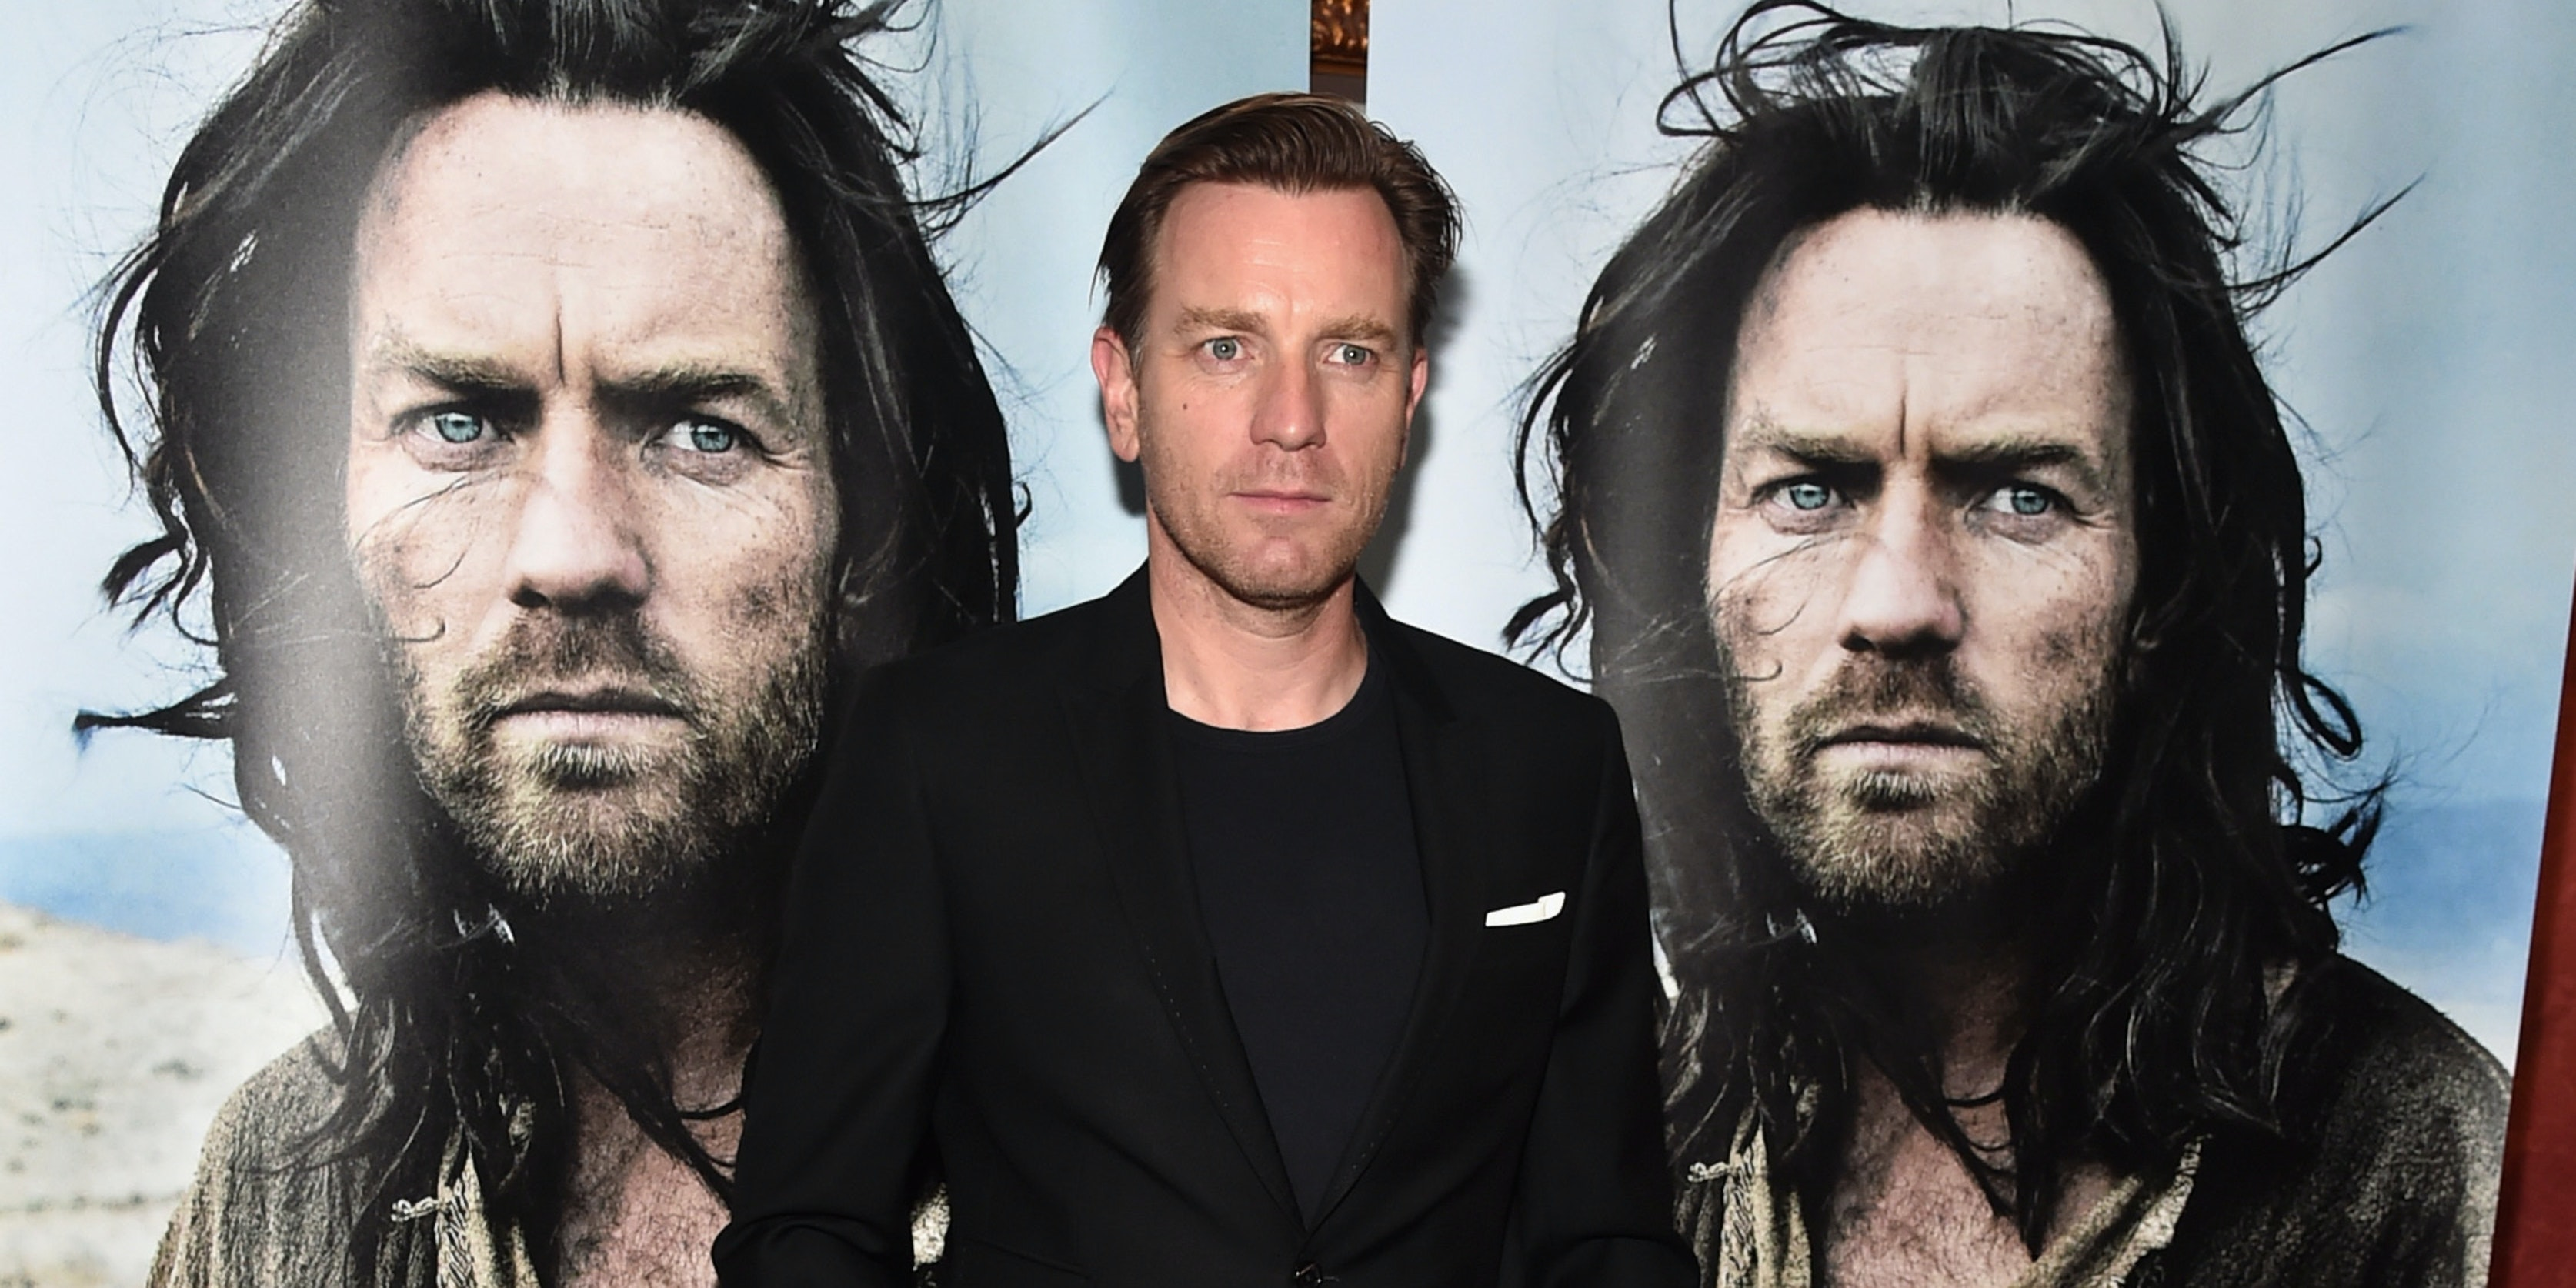 LOS ANGELES, CA - MAY 12:  Actor Ewan McGregor attends a VIP screening of Broad Green Pictures' 'Last Days In The Desert' on May 12, 2016 in Los Angeles, California.  (Photo by Alberto E. Rodriguez/Getty Images for Broad Green Pictures)